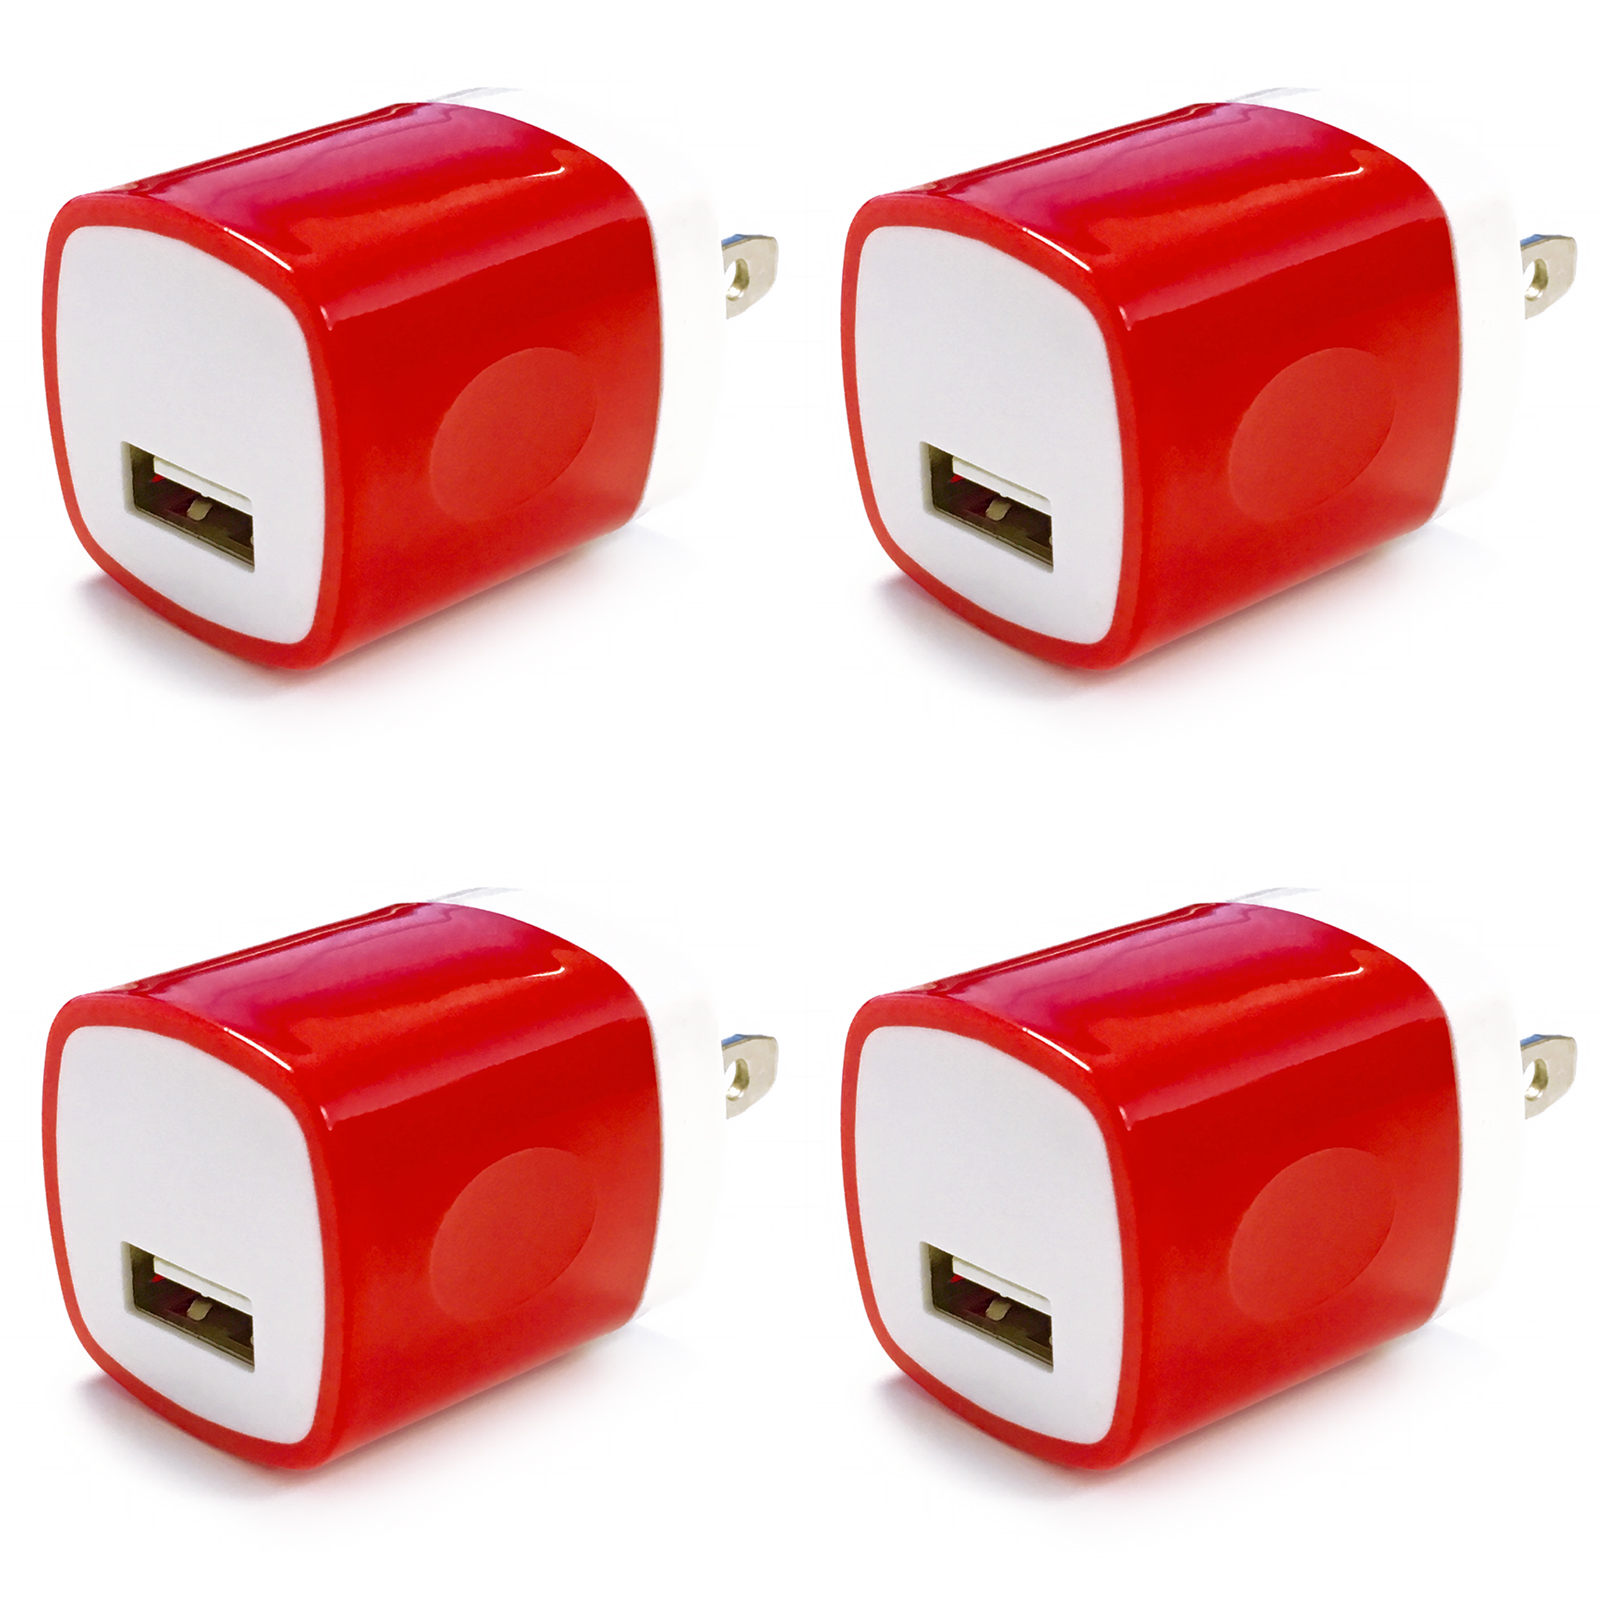 4x USB Wall Charger, Charger Adapter, FREEDOMTECH 1Amp Single Port Quick Charger Plug Cube for iPhone 7/6S/6S Plus/6 Plus/6/5S/5, Samsung Galaxy S7/S6/S5 Edge, LG, HTC, Huawei, Moto, Kindle and More